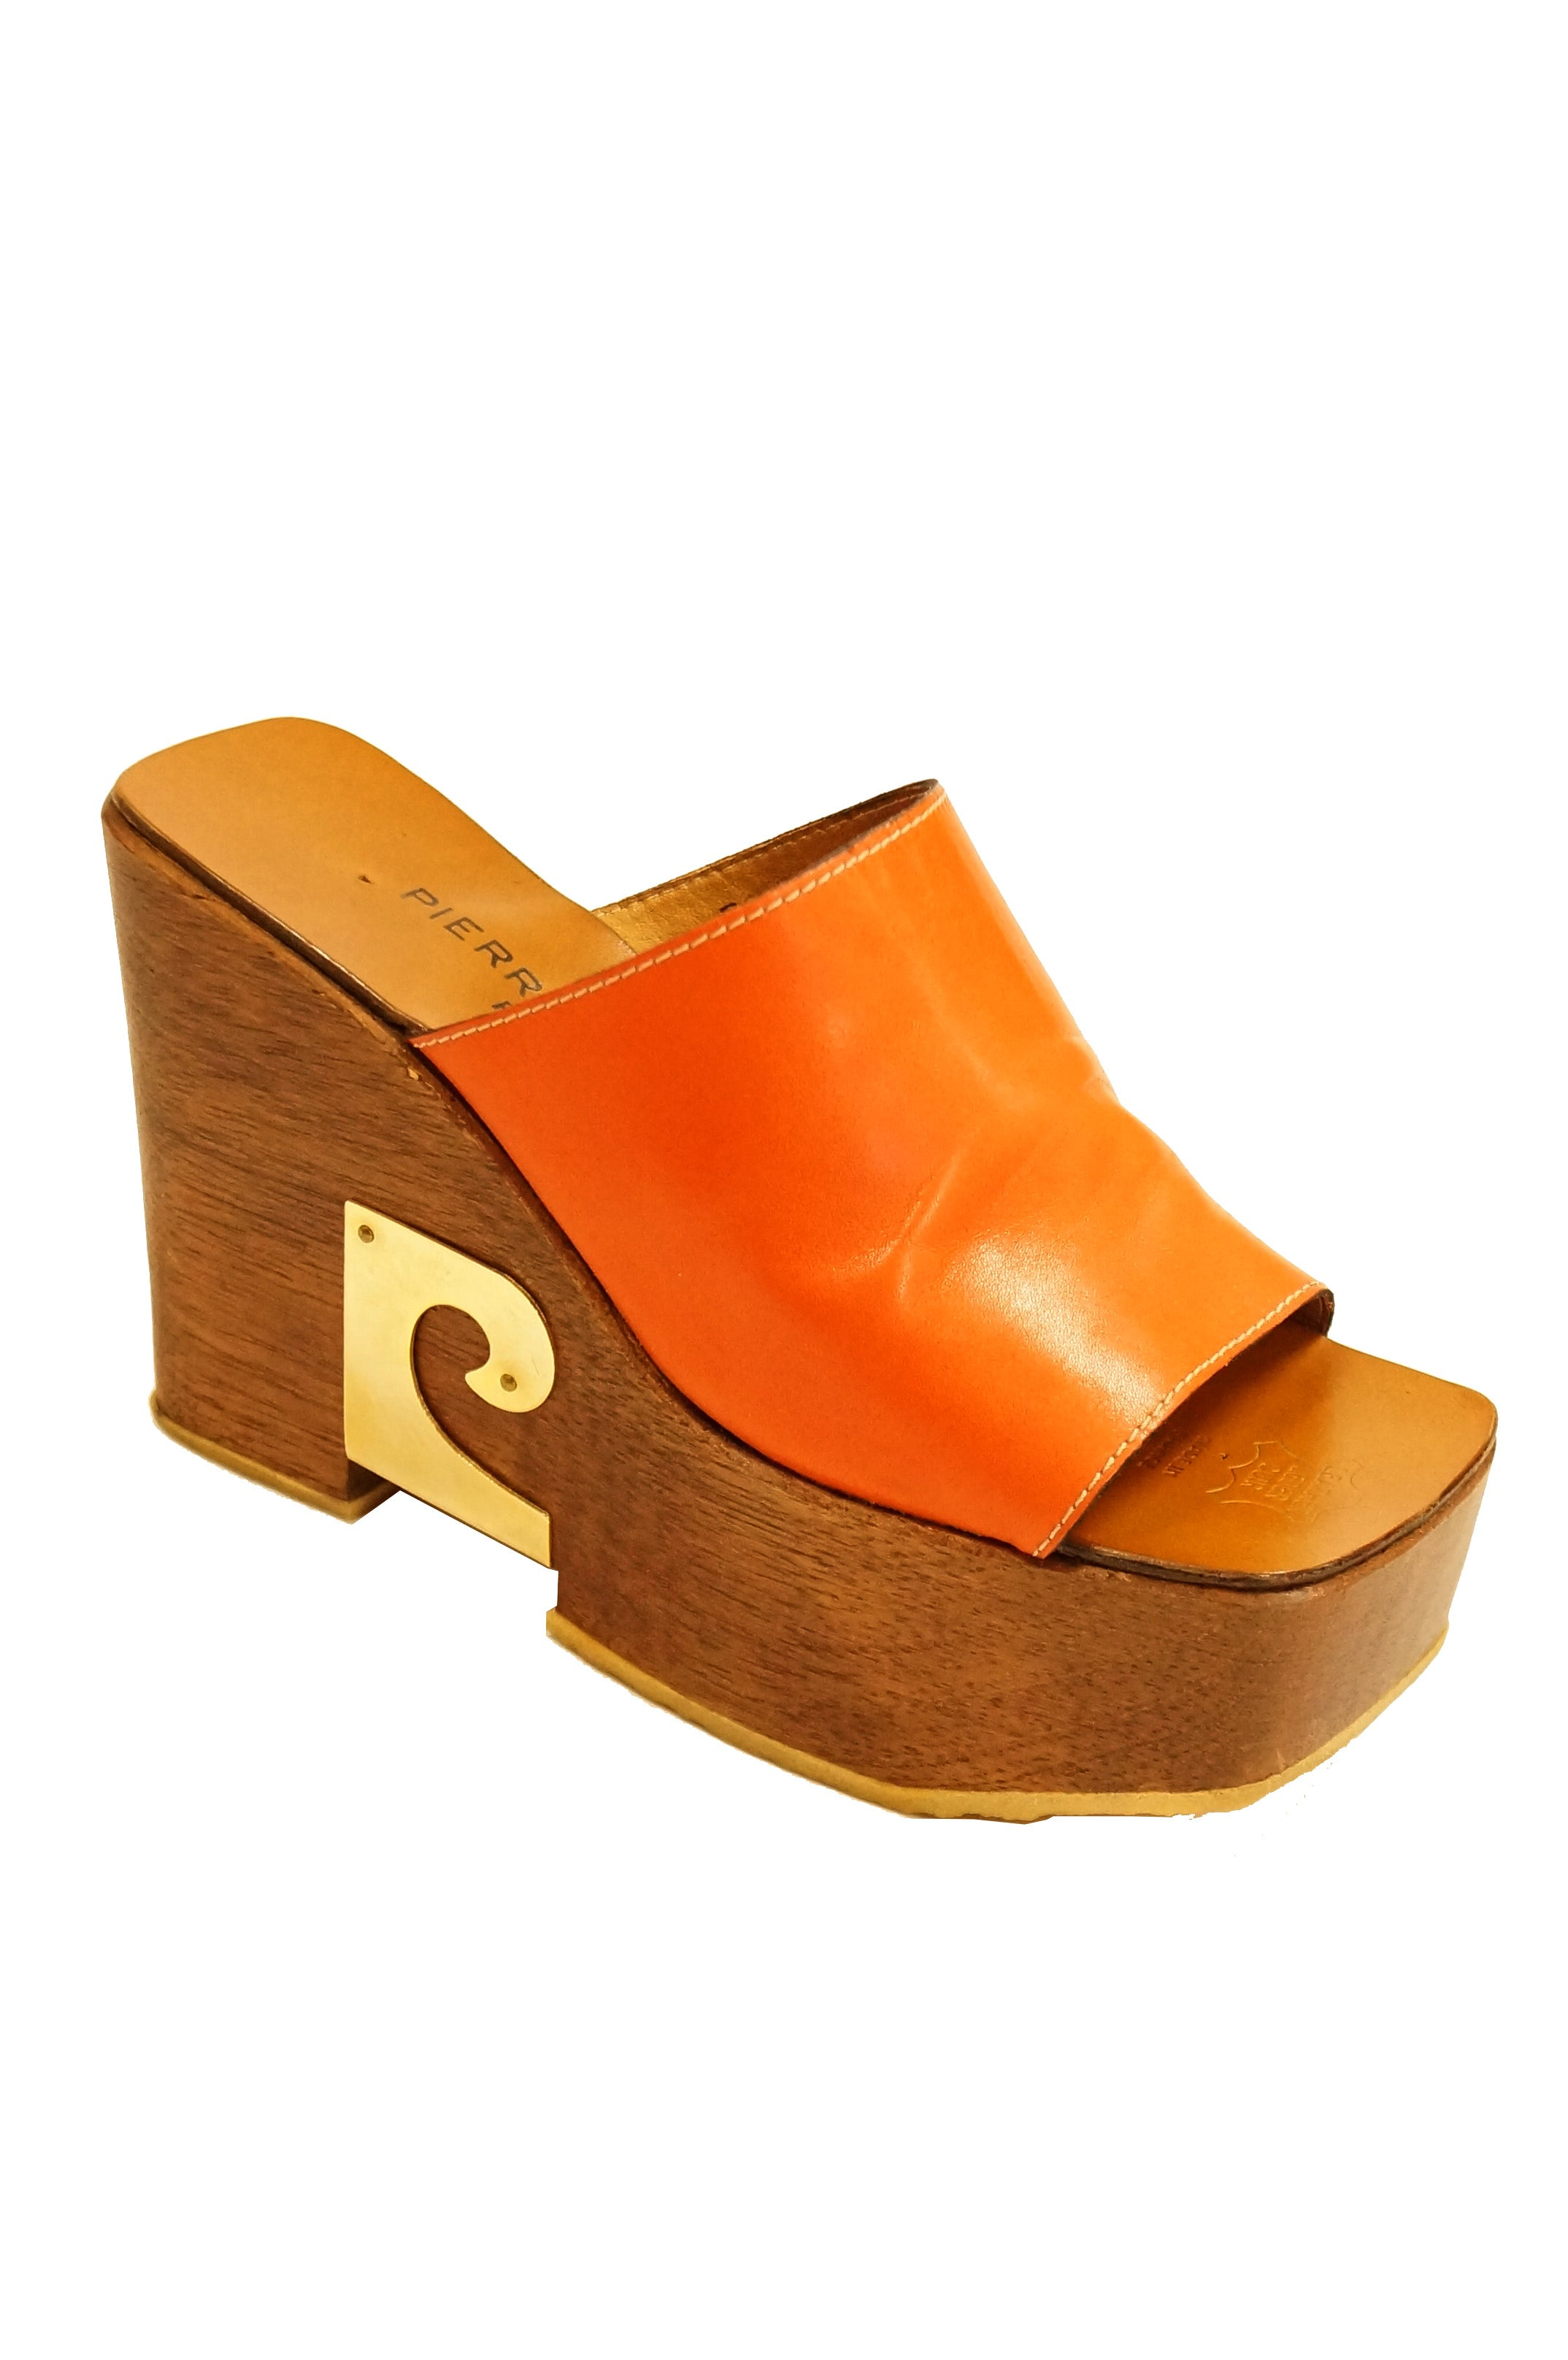 Rare 1970s Pierre Cardin 7AA Carmel Leather and Wood Platform Shoes